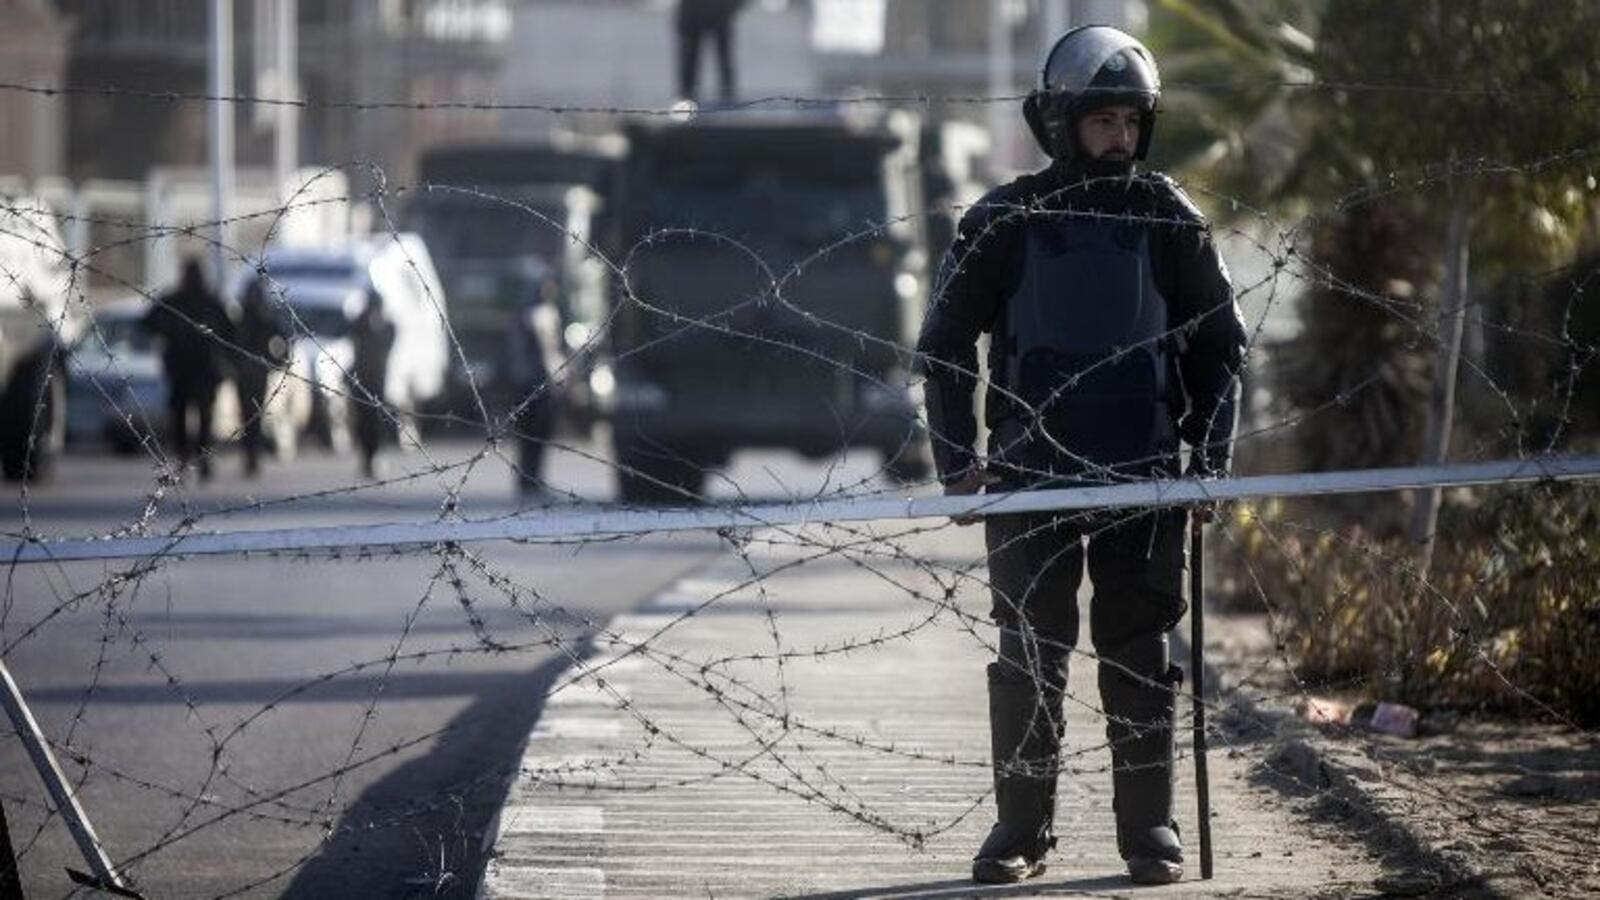 Egyptian riot police are seen on patrol in Cairo. (AFP/File)